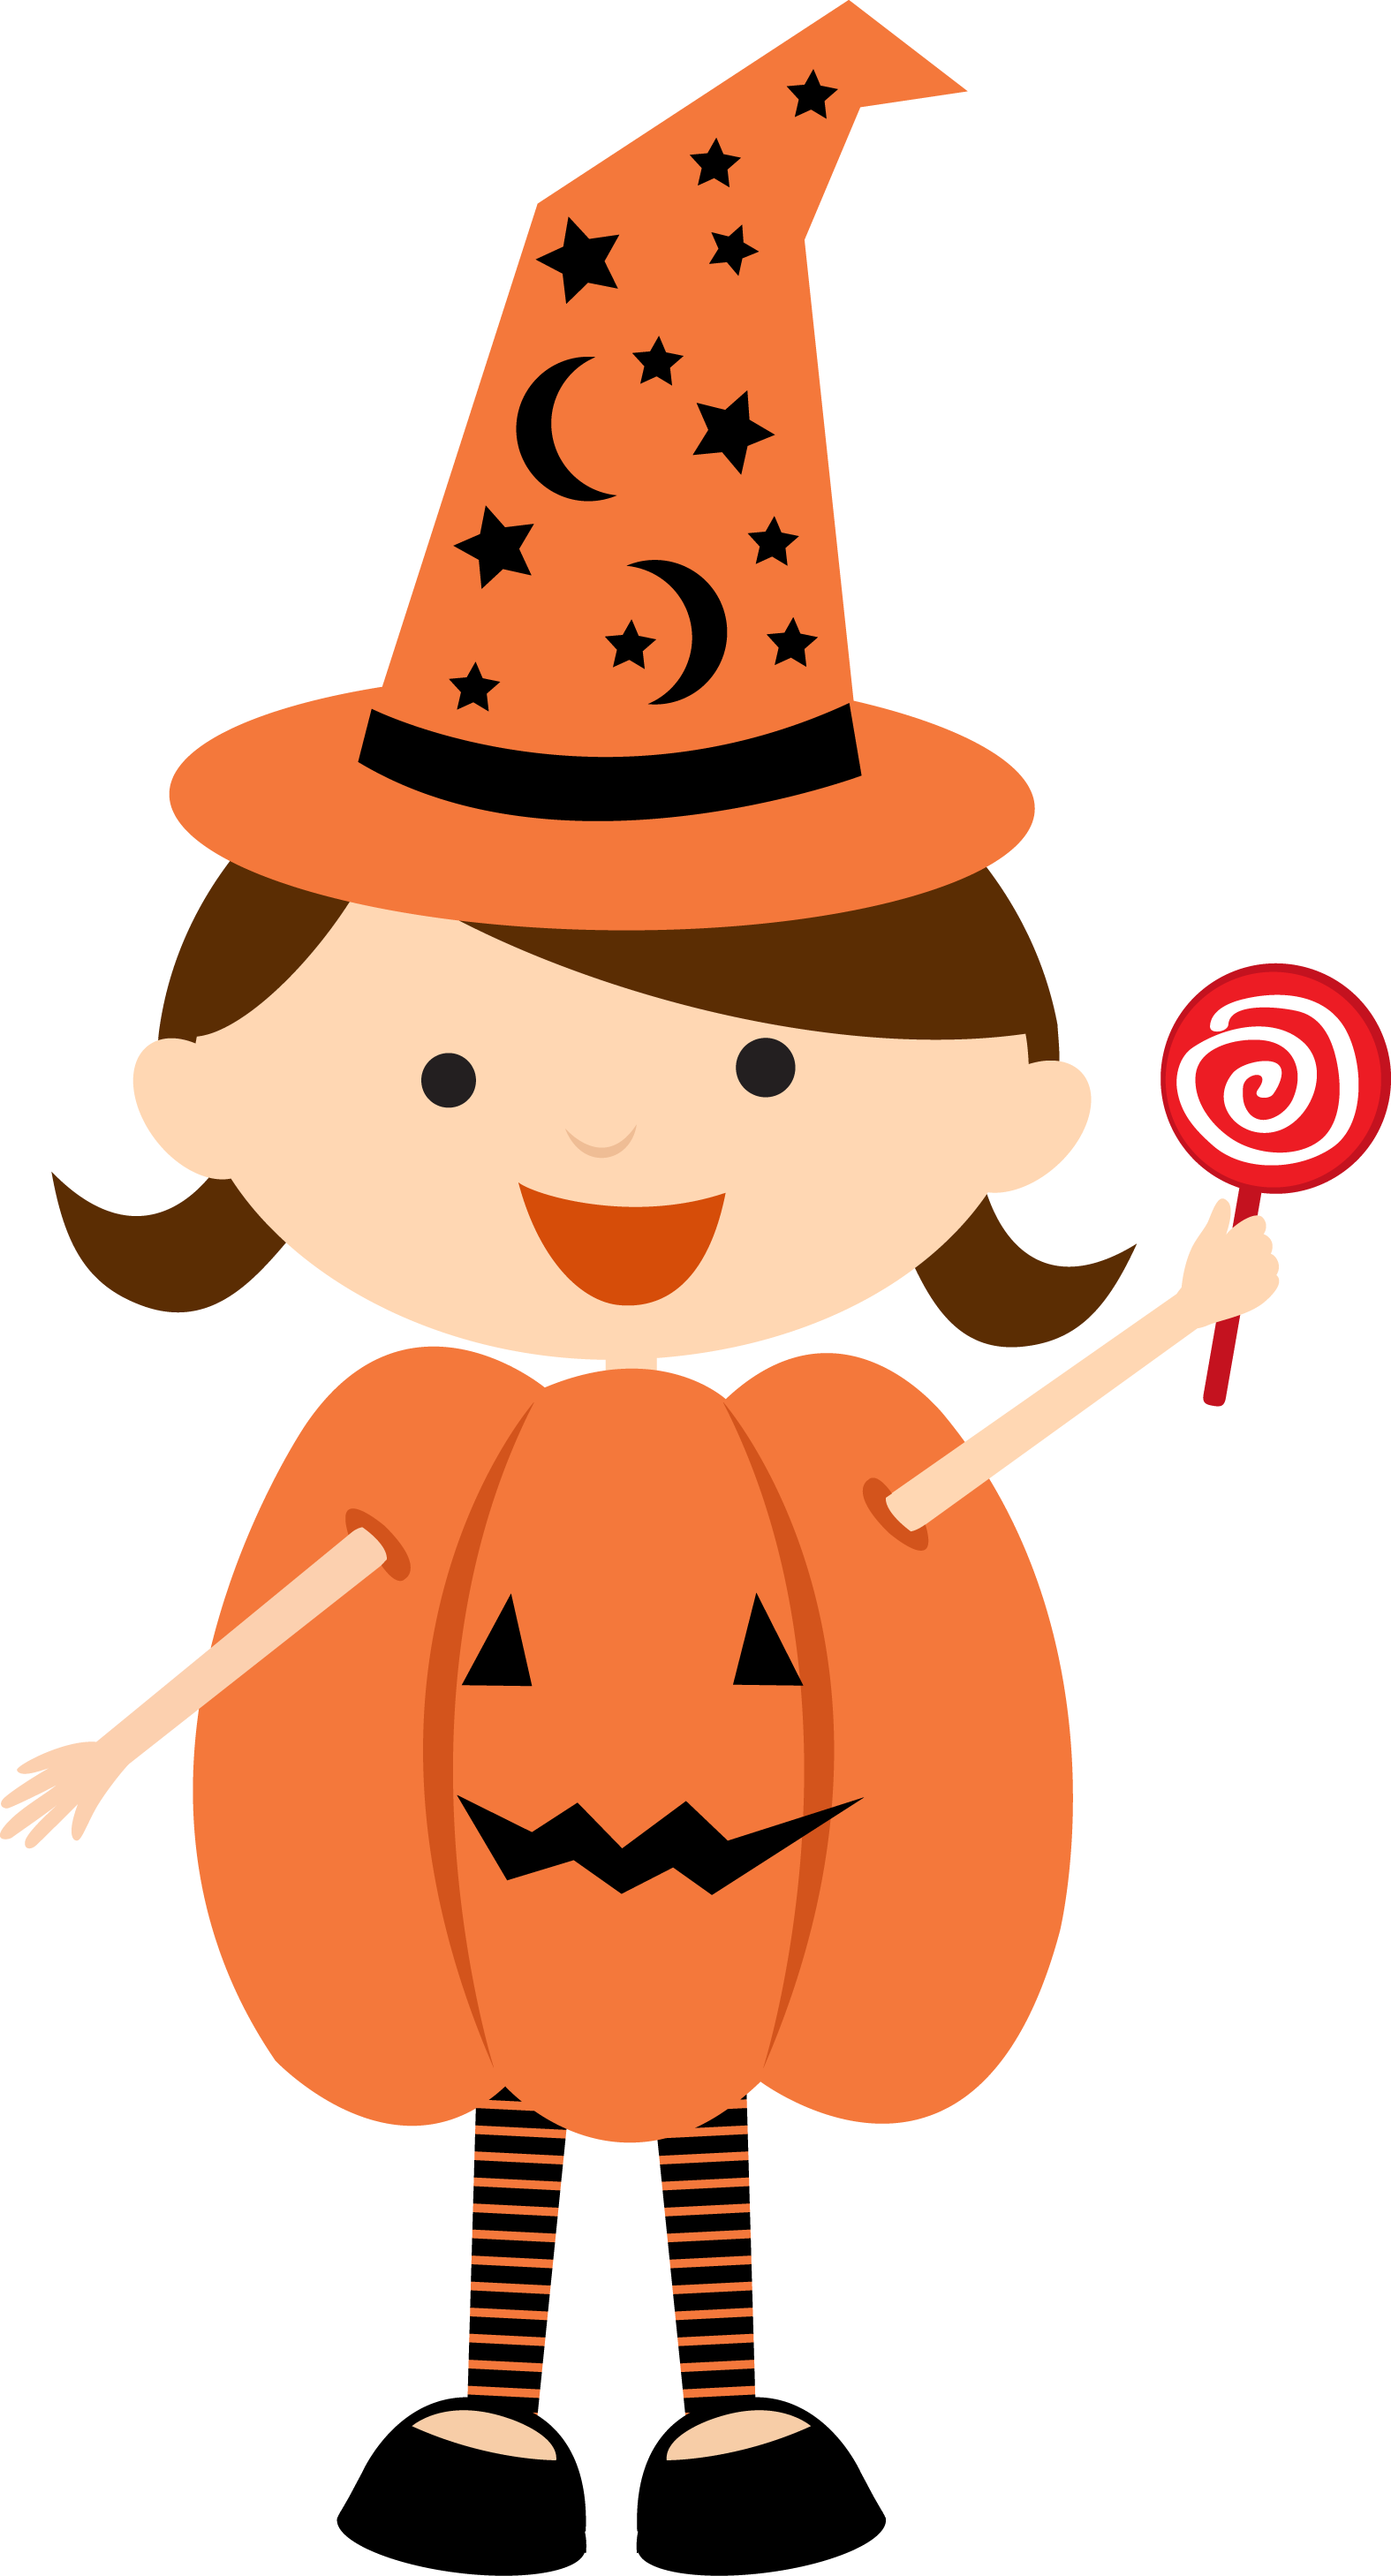 HALLOWEEN BABY WITCH CLIP ART | brujas y magos | Pinterest | Clip ...